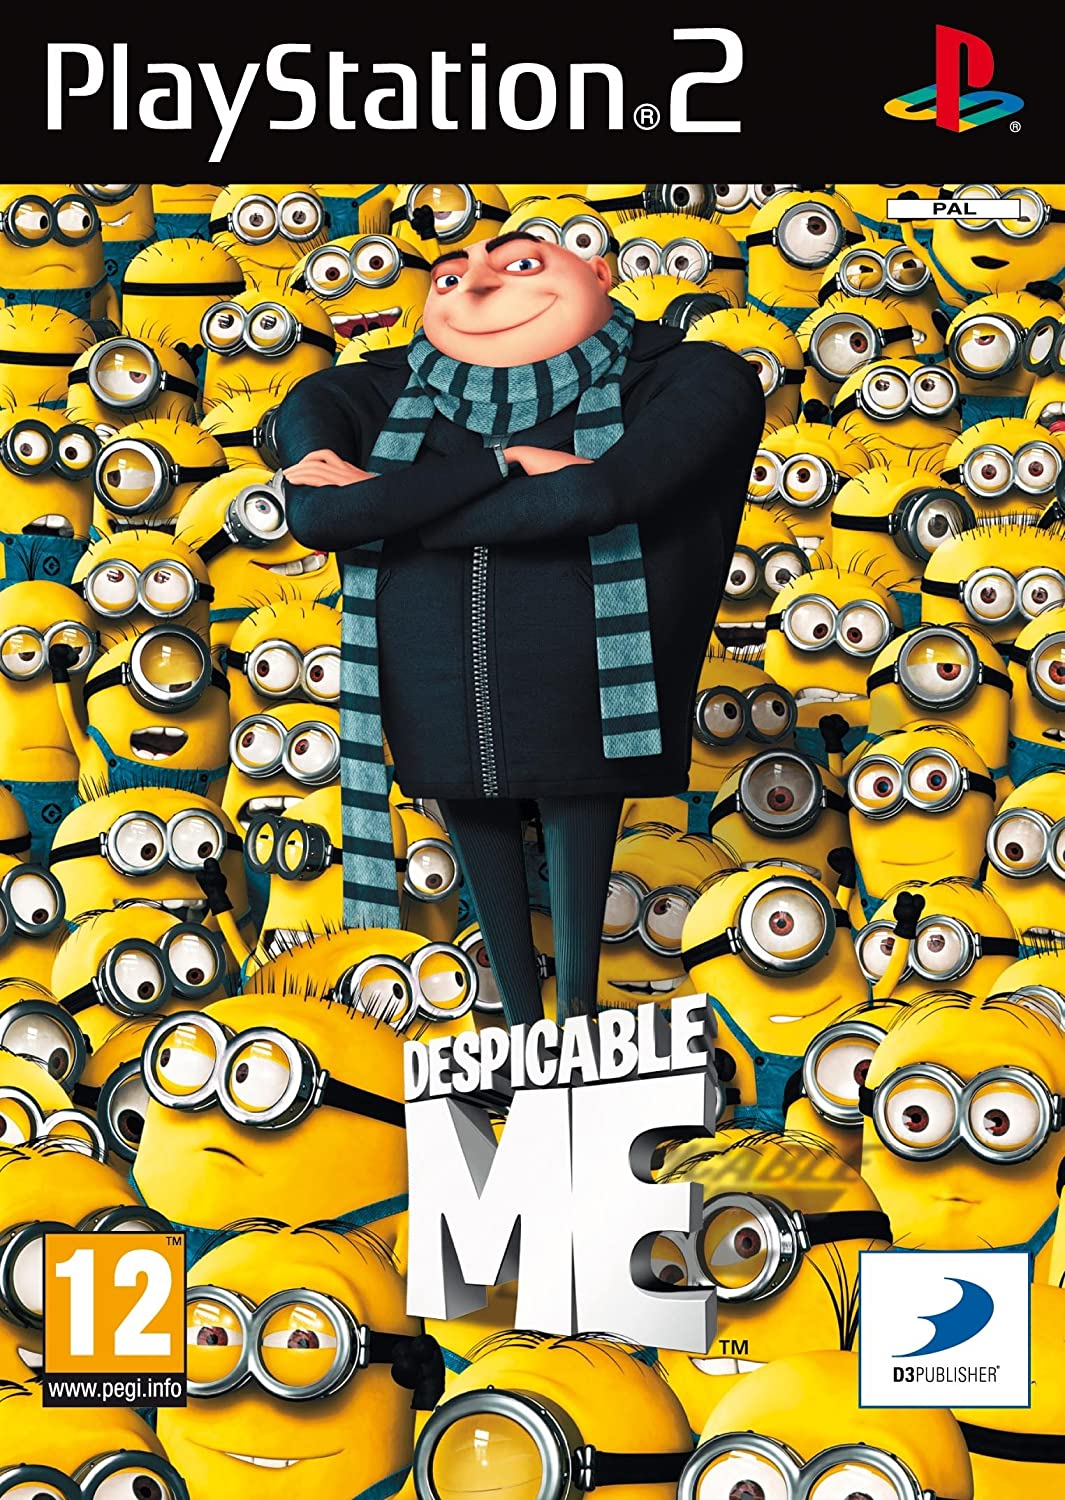 Despicable Me Xbox Ps3 Pc jtag rgh dvd iso Xbox360 Wii Nintendo Mac Linux